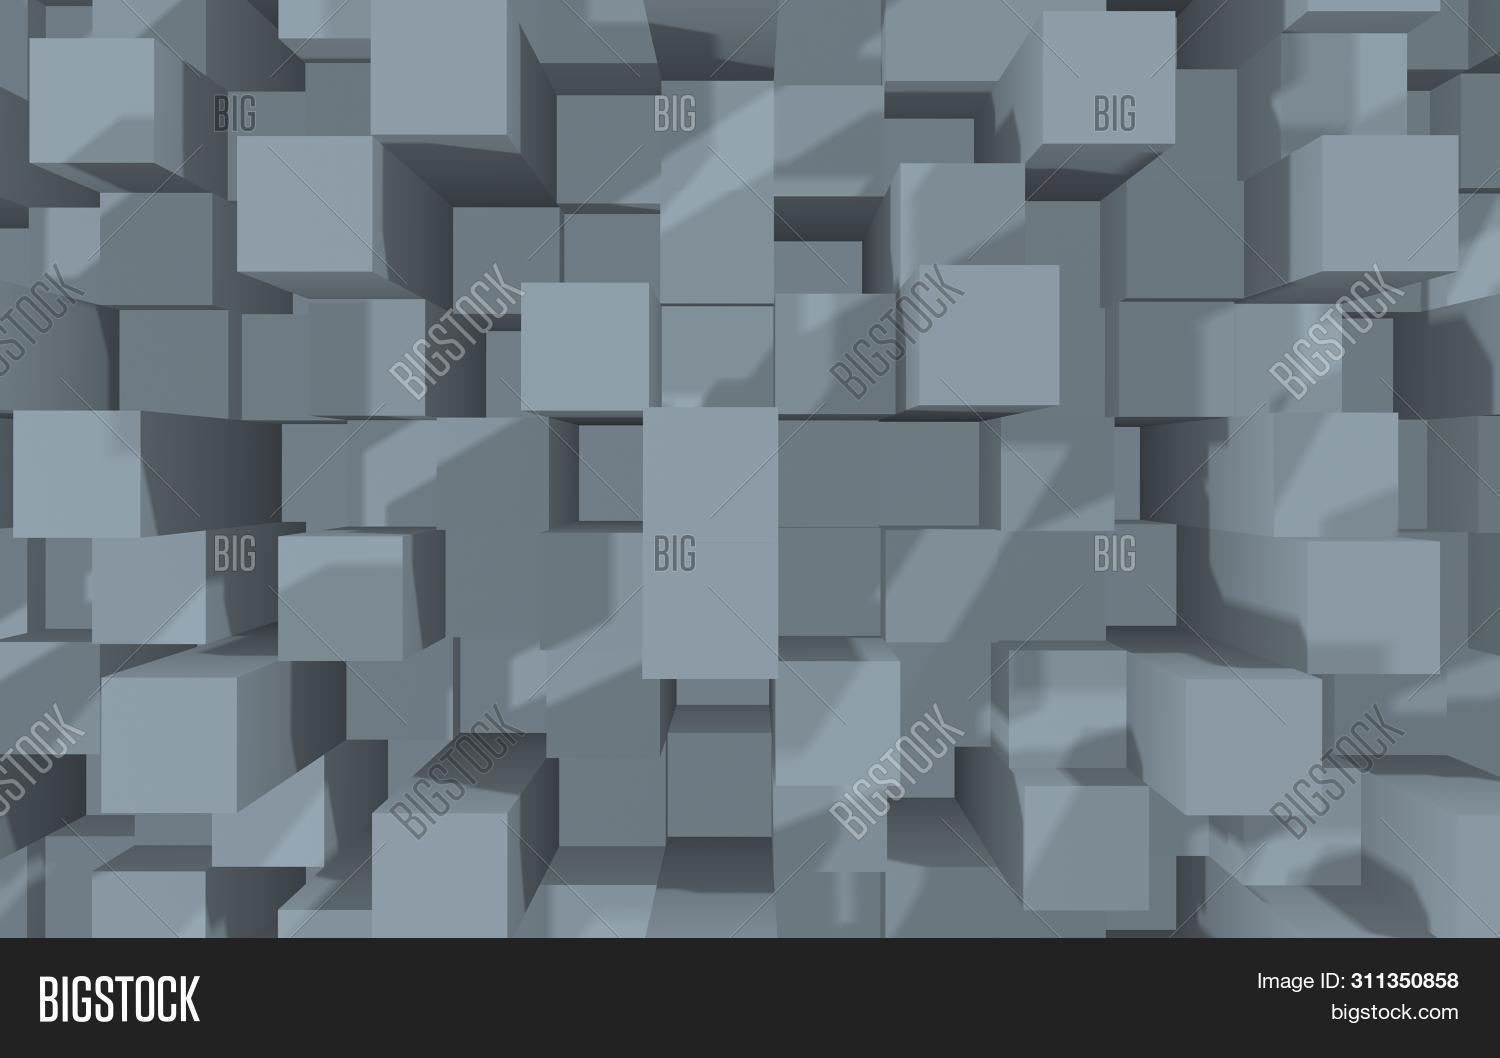 3d,3d-illustration,3d-rendering,abstract,abstraction,architecture,backdrop,background,bars,block,box,business,chaotic,columns,concept,construction,cool,cover,creative,cube,decoration,design,digital,elegant,extended,geometric,graphic,gray,group,illustration,modern,network,pattern,perspective,presentation,rectangular,render,shape,space,square,structure,style,technology,texture,tile,wallpaper,web,white